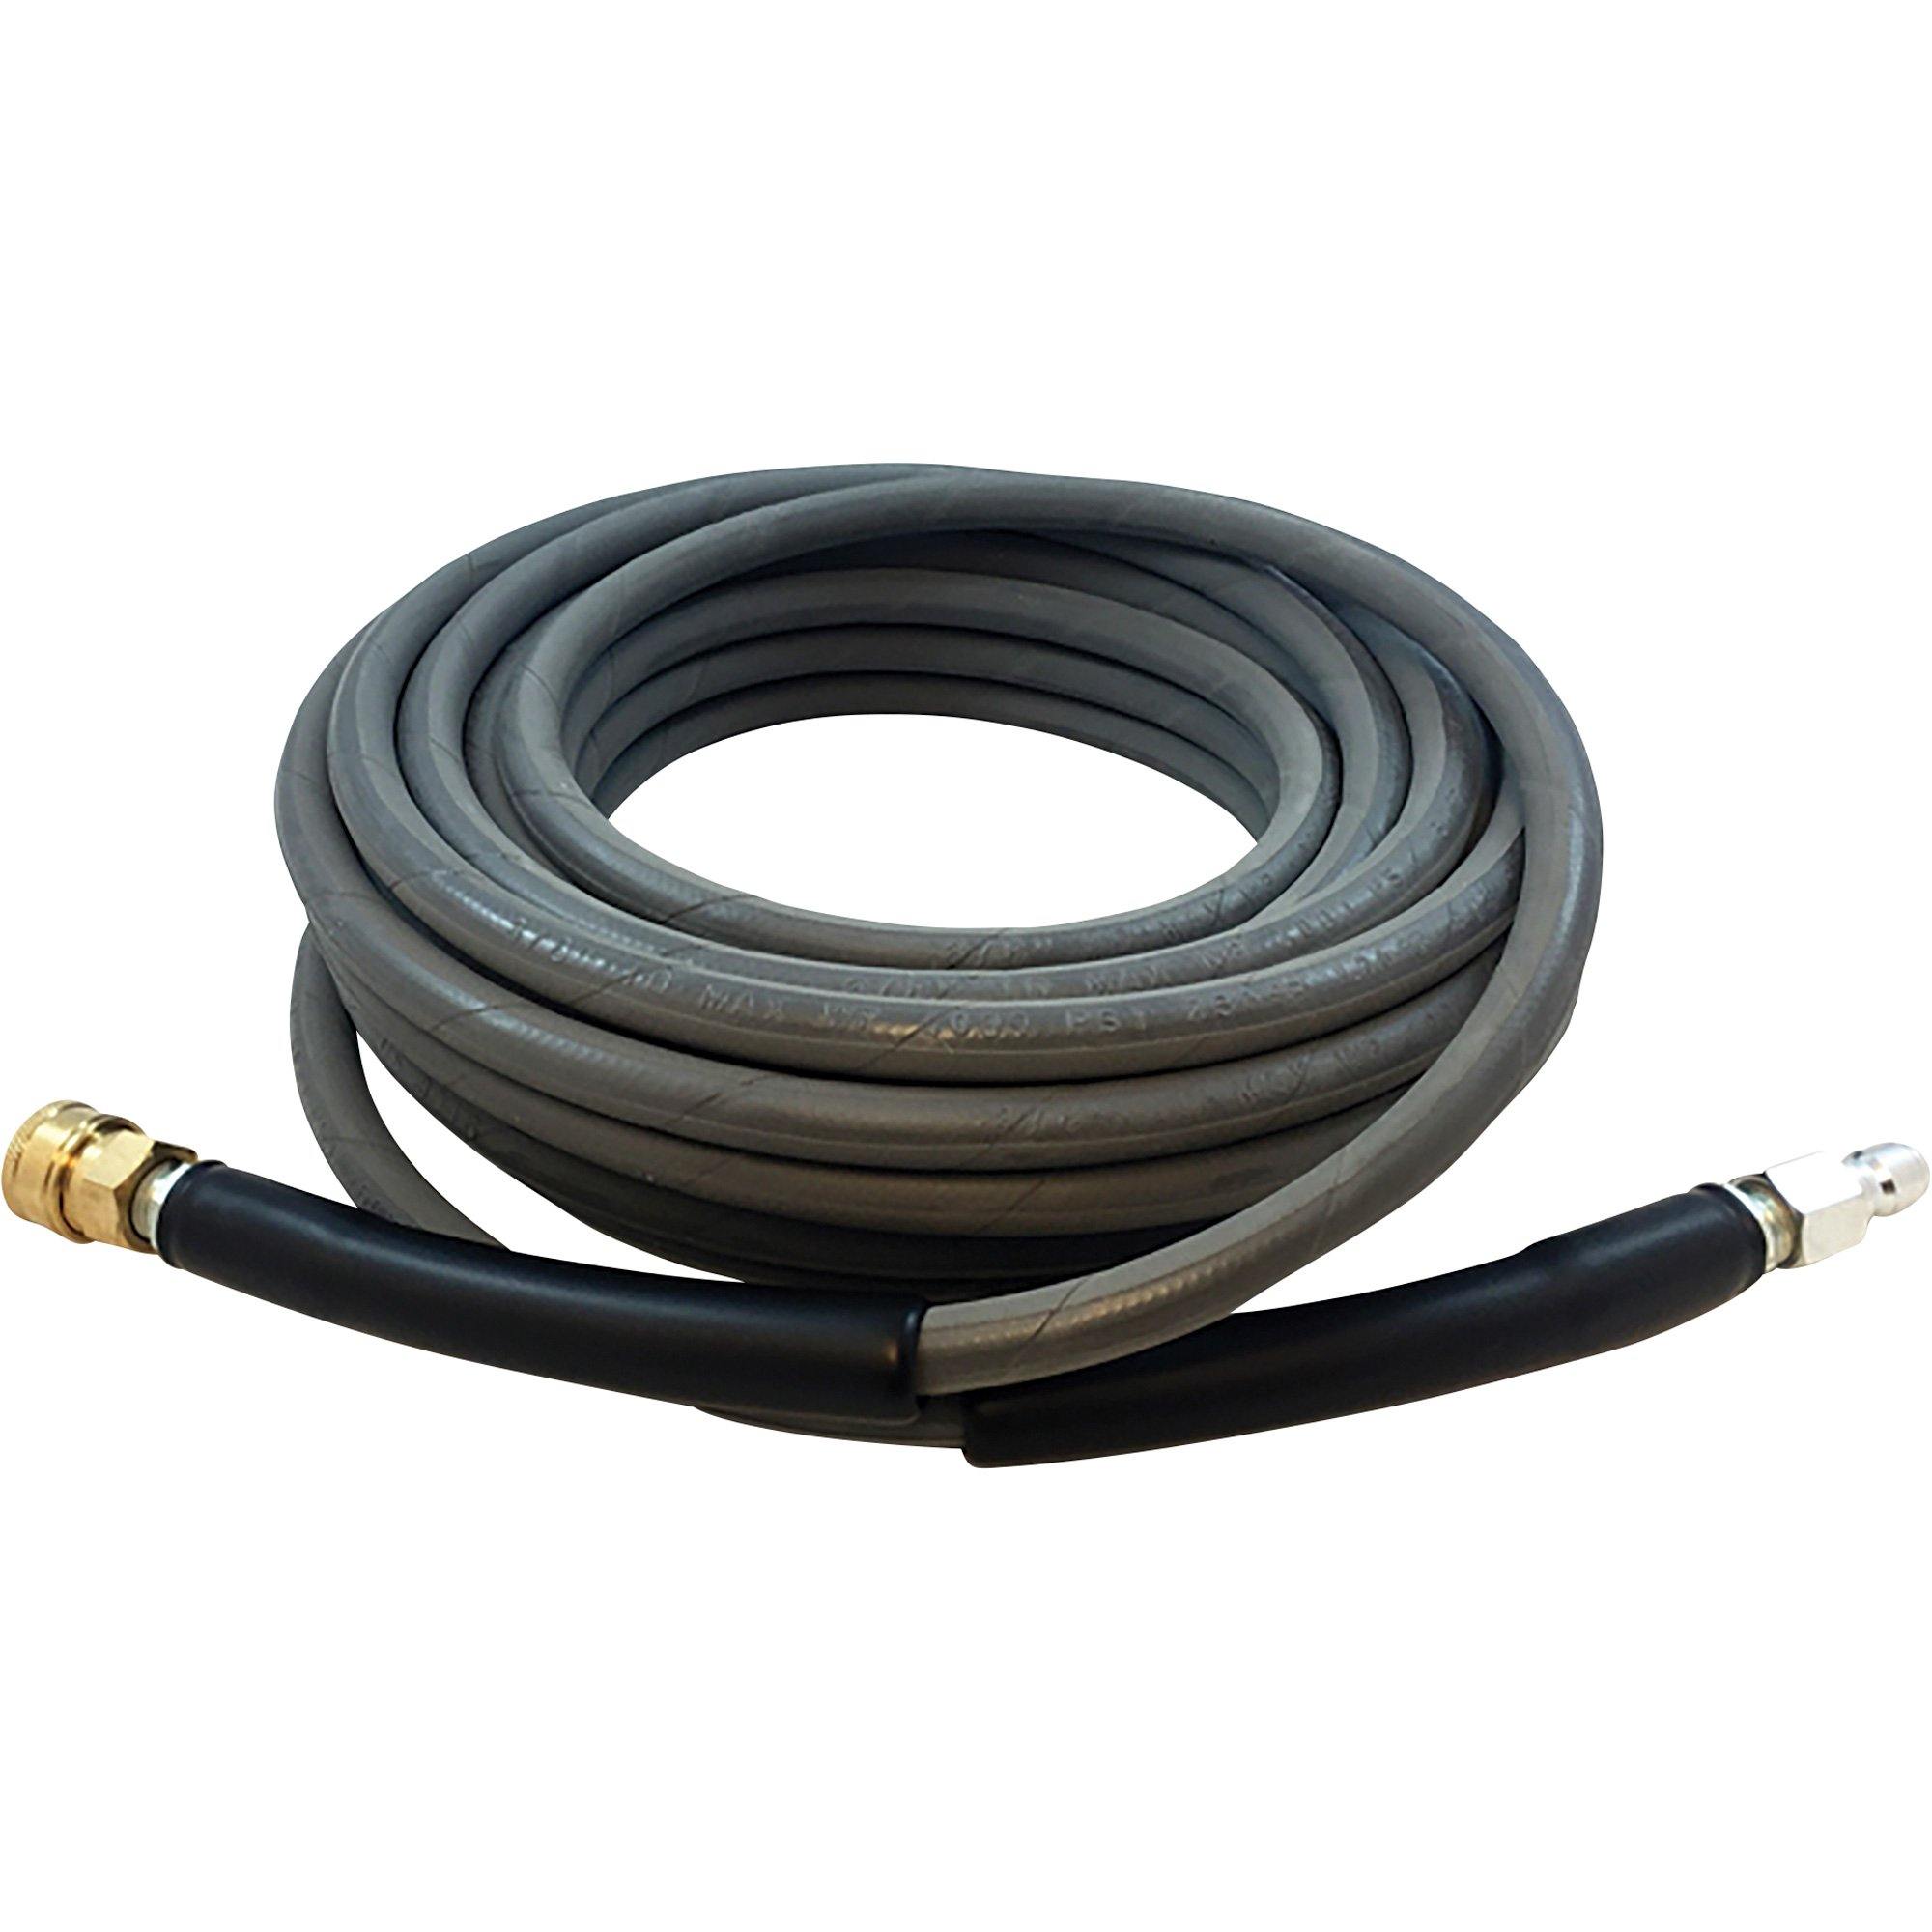 NorthStar Nonmarking Pressure Washer Hose - 4000 PSI 50ft. x 3/8in. - 42945 - 989401980